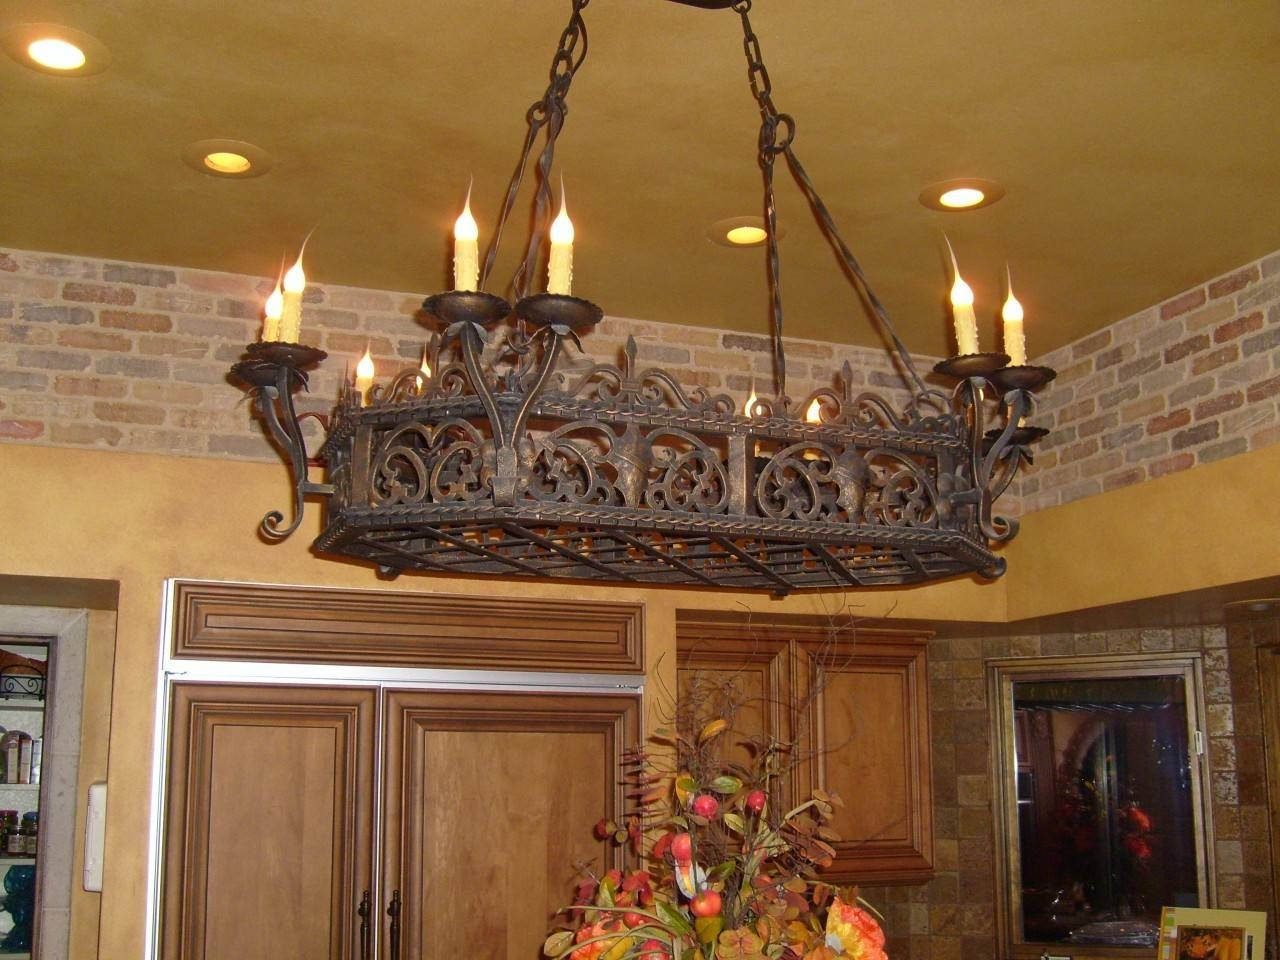 Iron Chandeliers Rustic | Chandelier Models with Wrought Iron Lights Fixtures for Kitchens (Image 6 of 15)